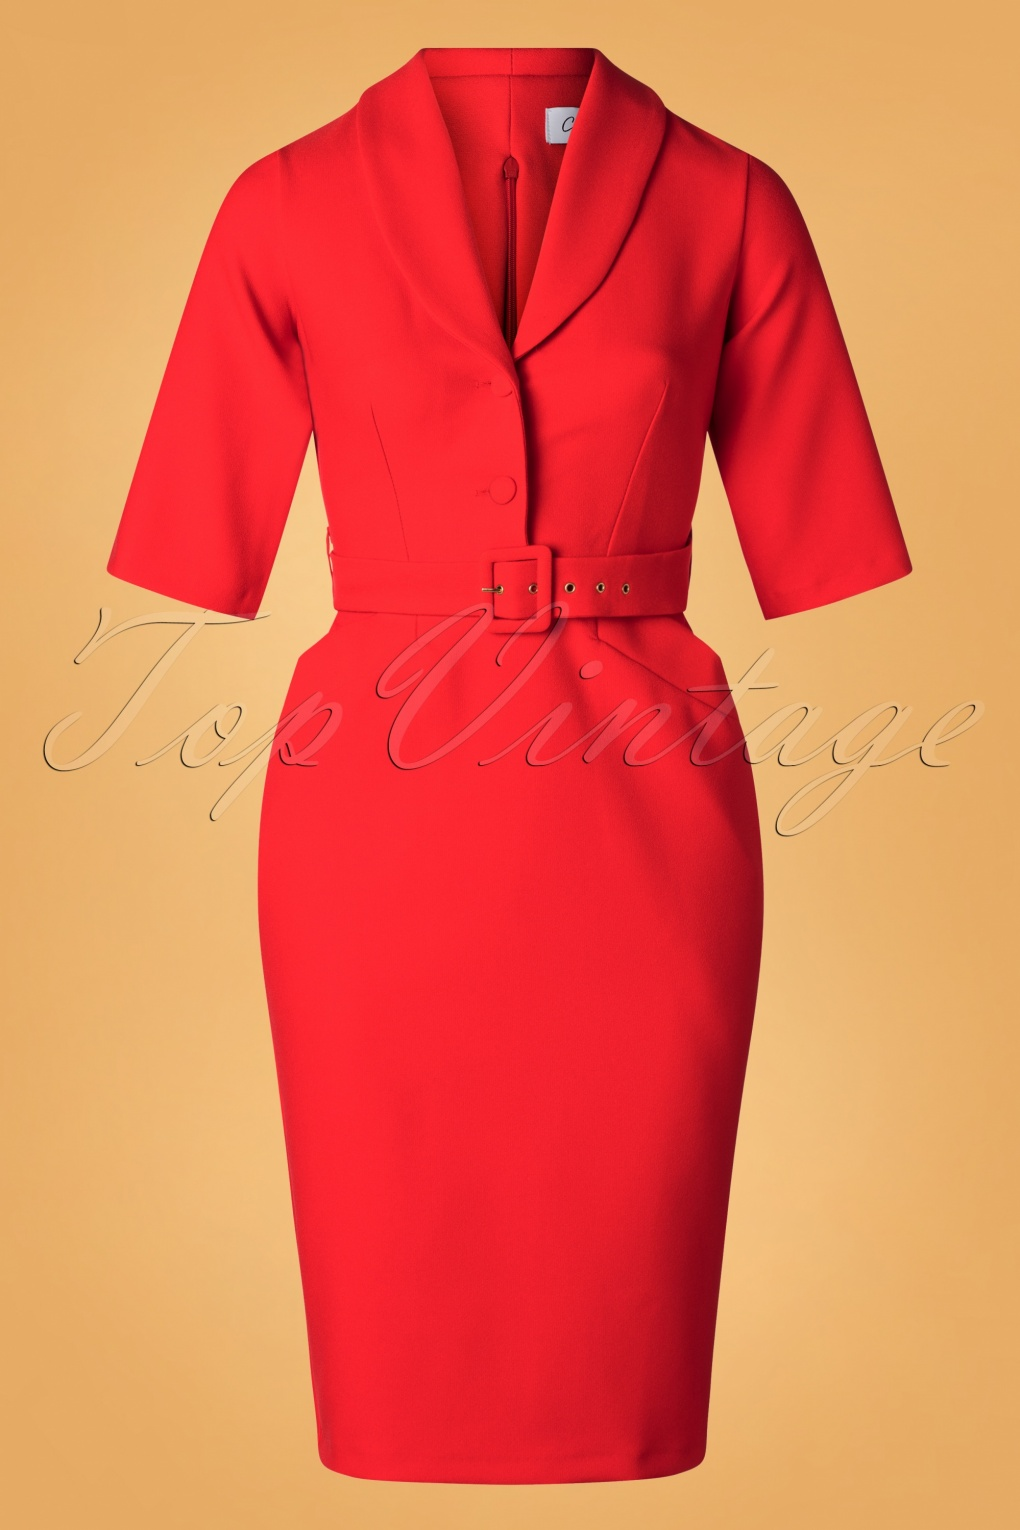 1960s Style Dresses, Clothing, Shoes UK 60s Sherri Pencil Dress in Bright Red £71.19 AT vintagedancer.com